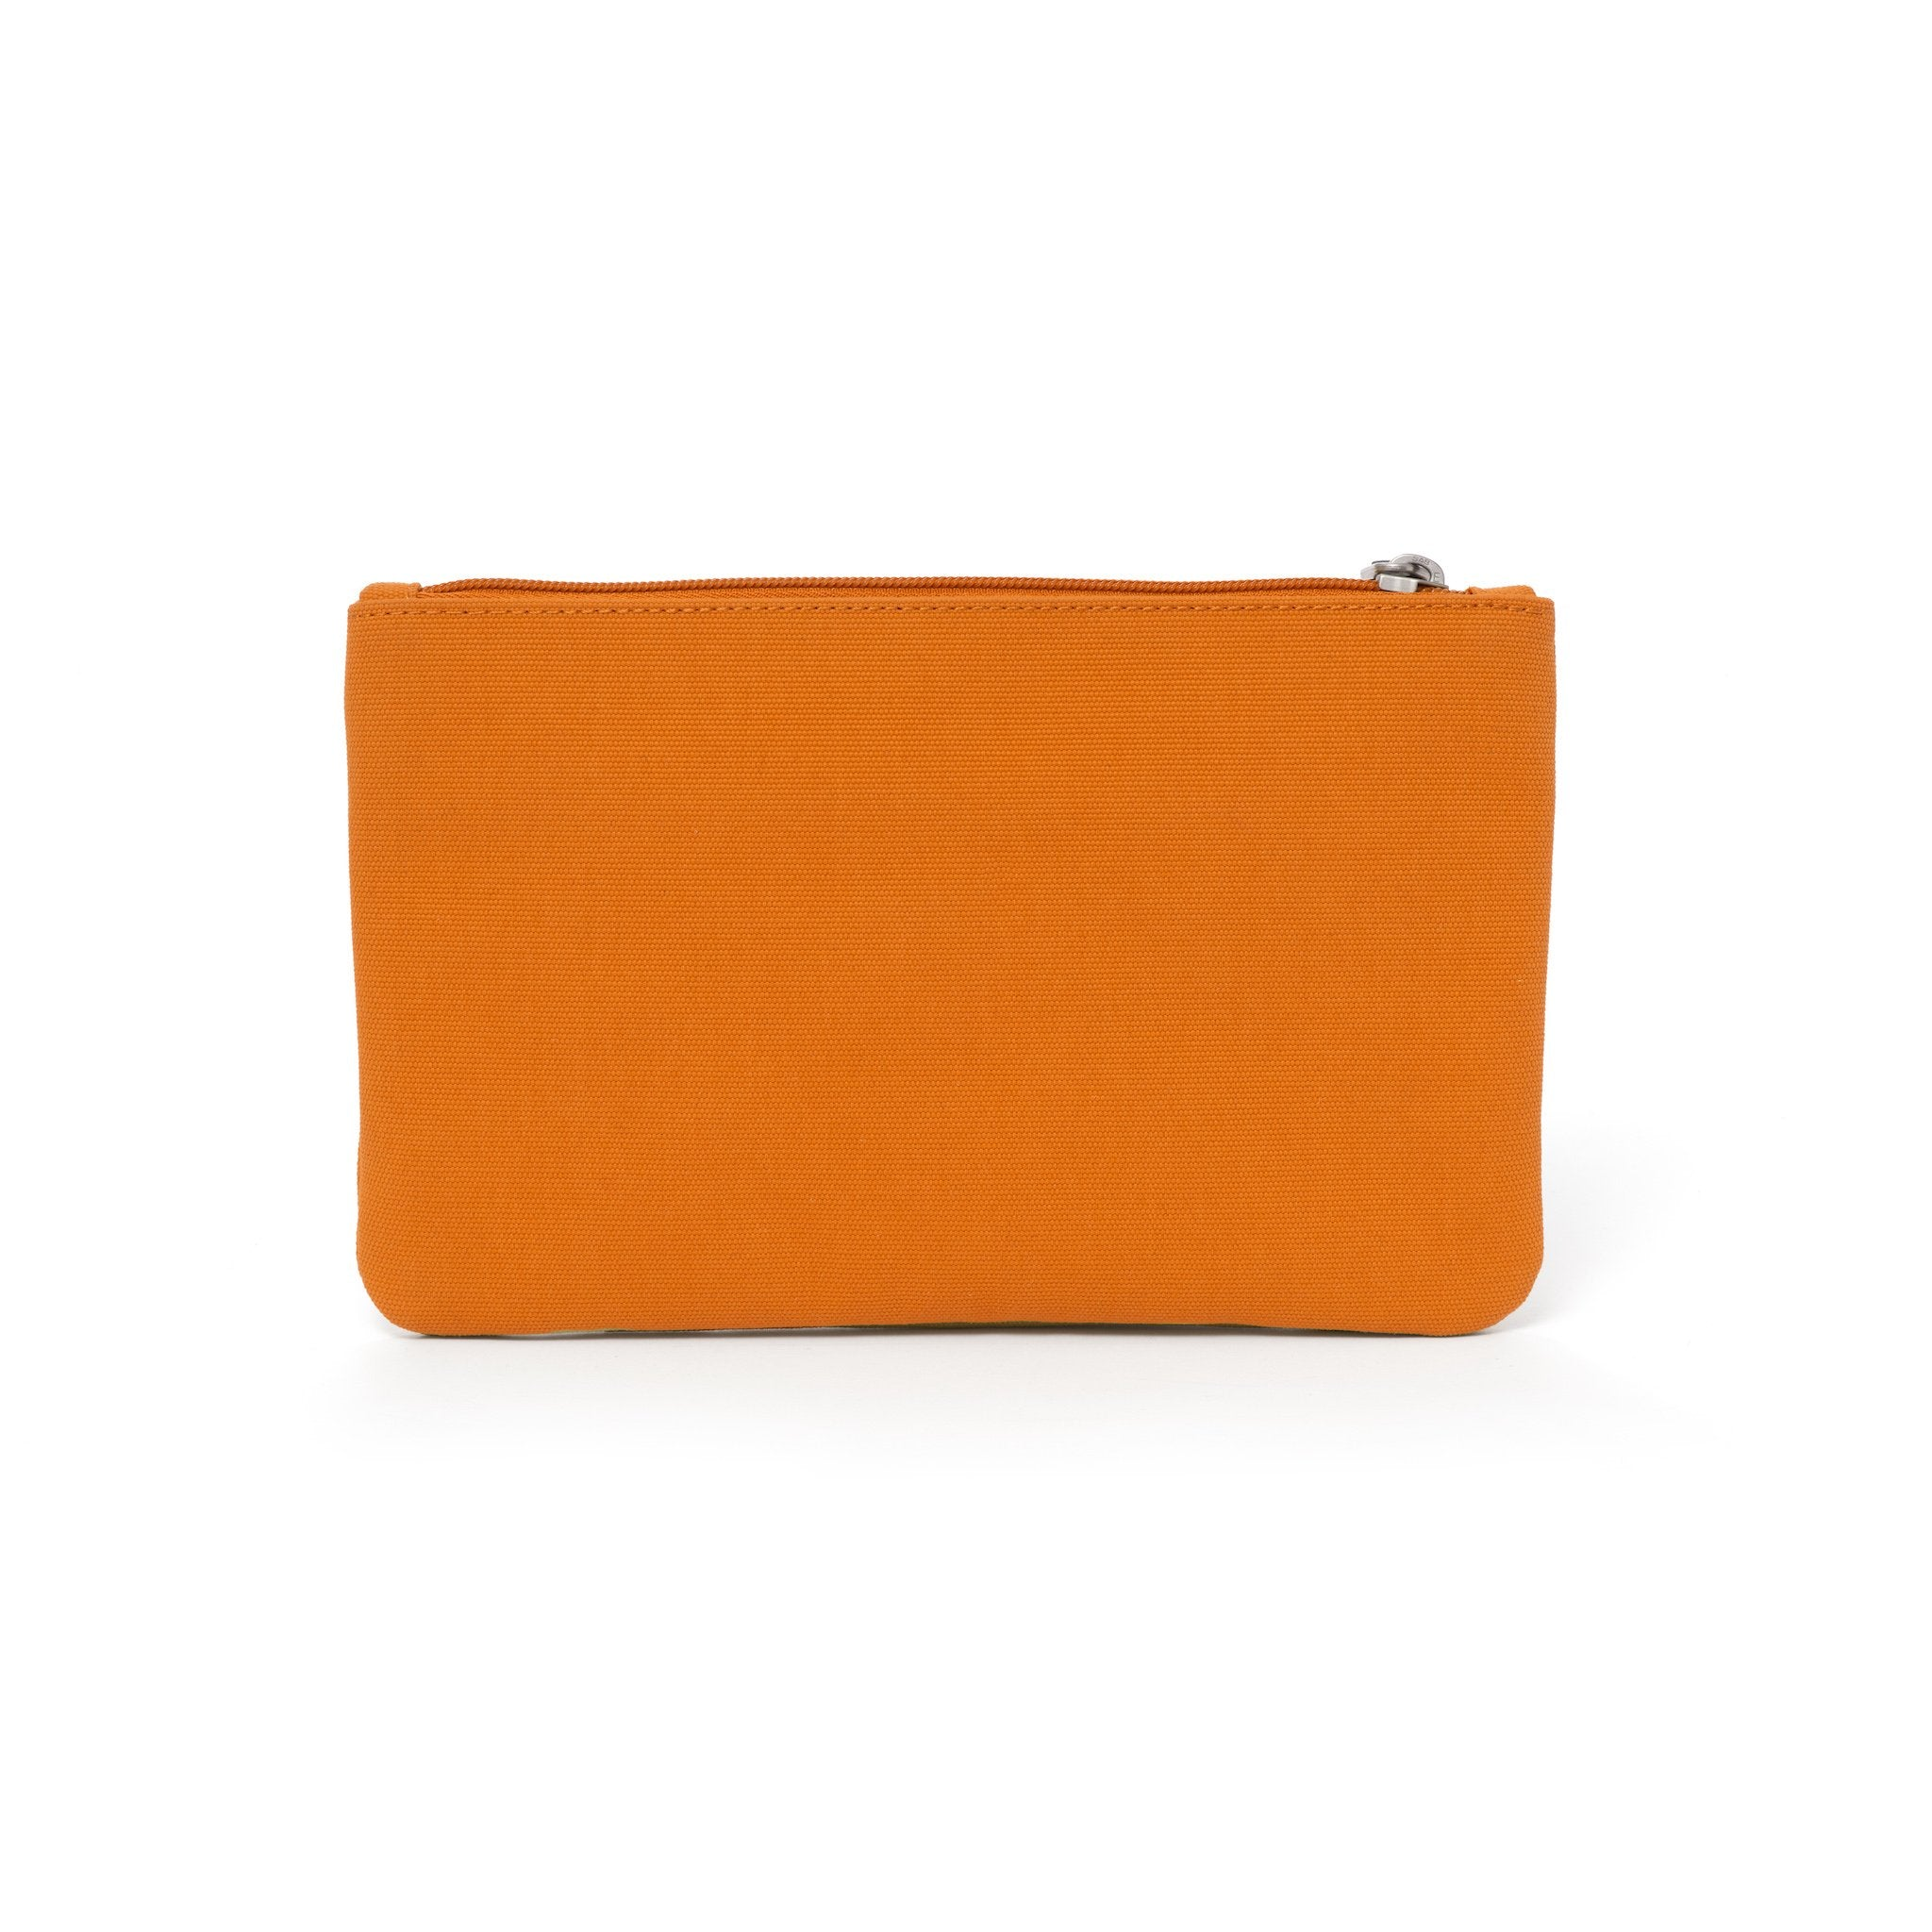 Orange canvas travel wallet.